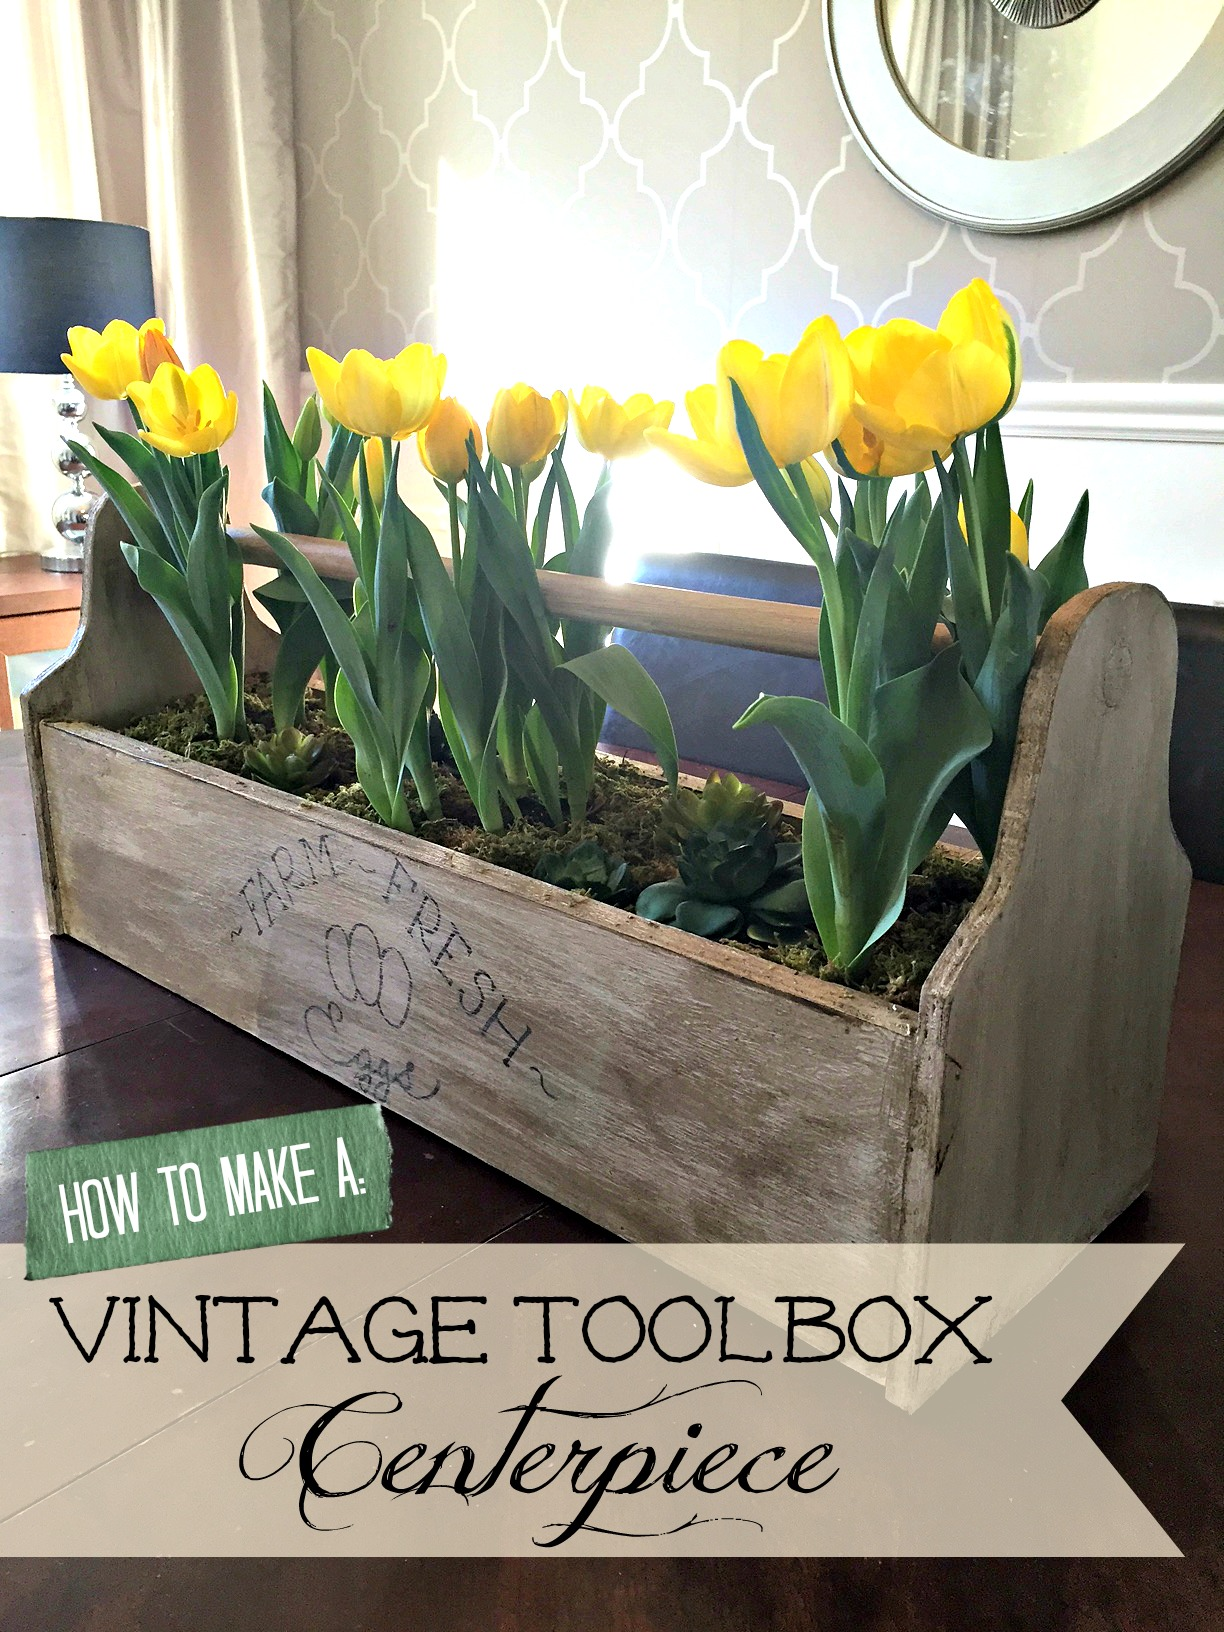 How to Make a Vintage Toolbox Easter or Spring Centerpiece Fixer Upper Style Farmhouse Vintage Toolbox apurdylittlehouse.com